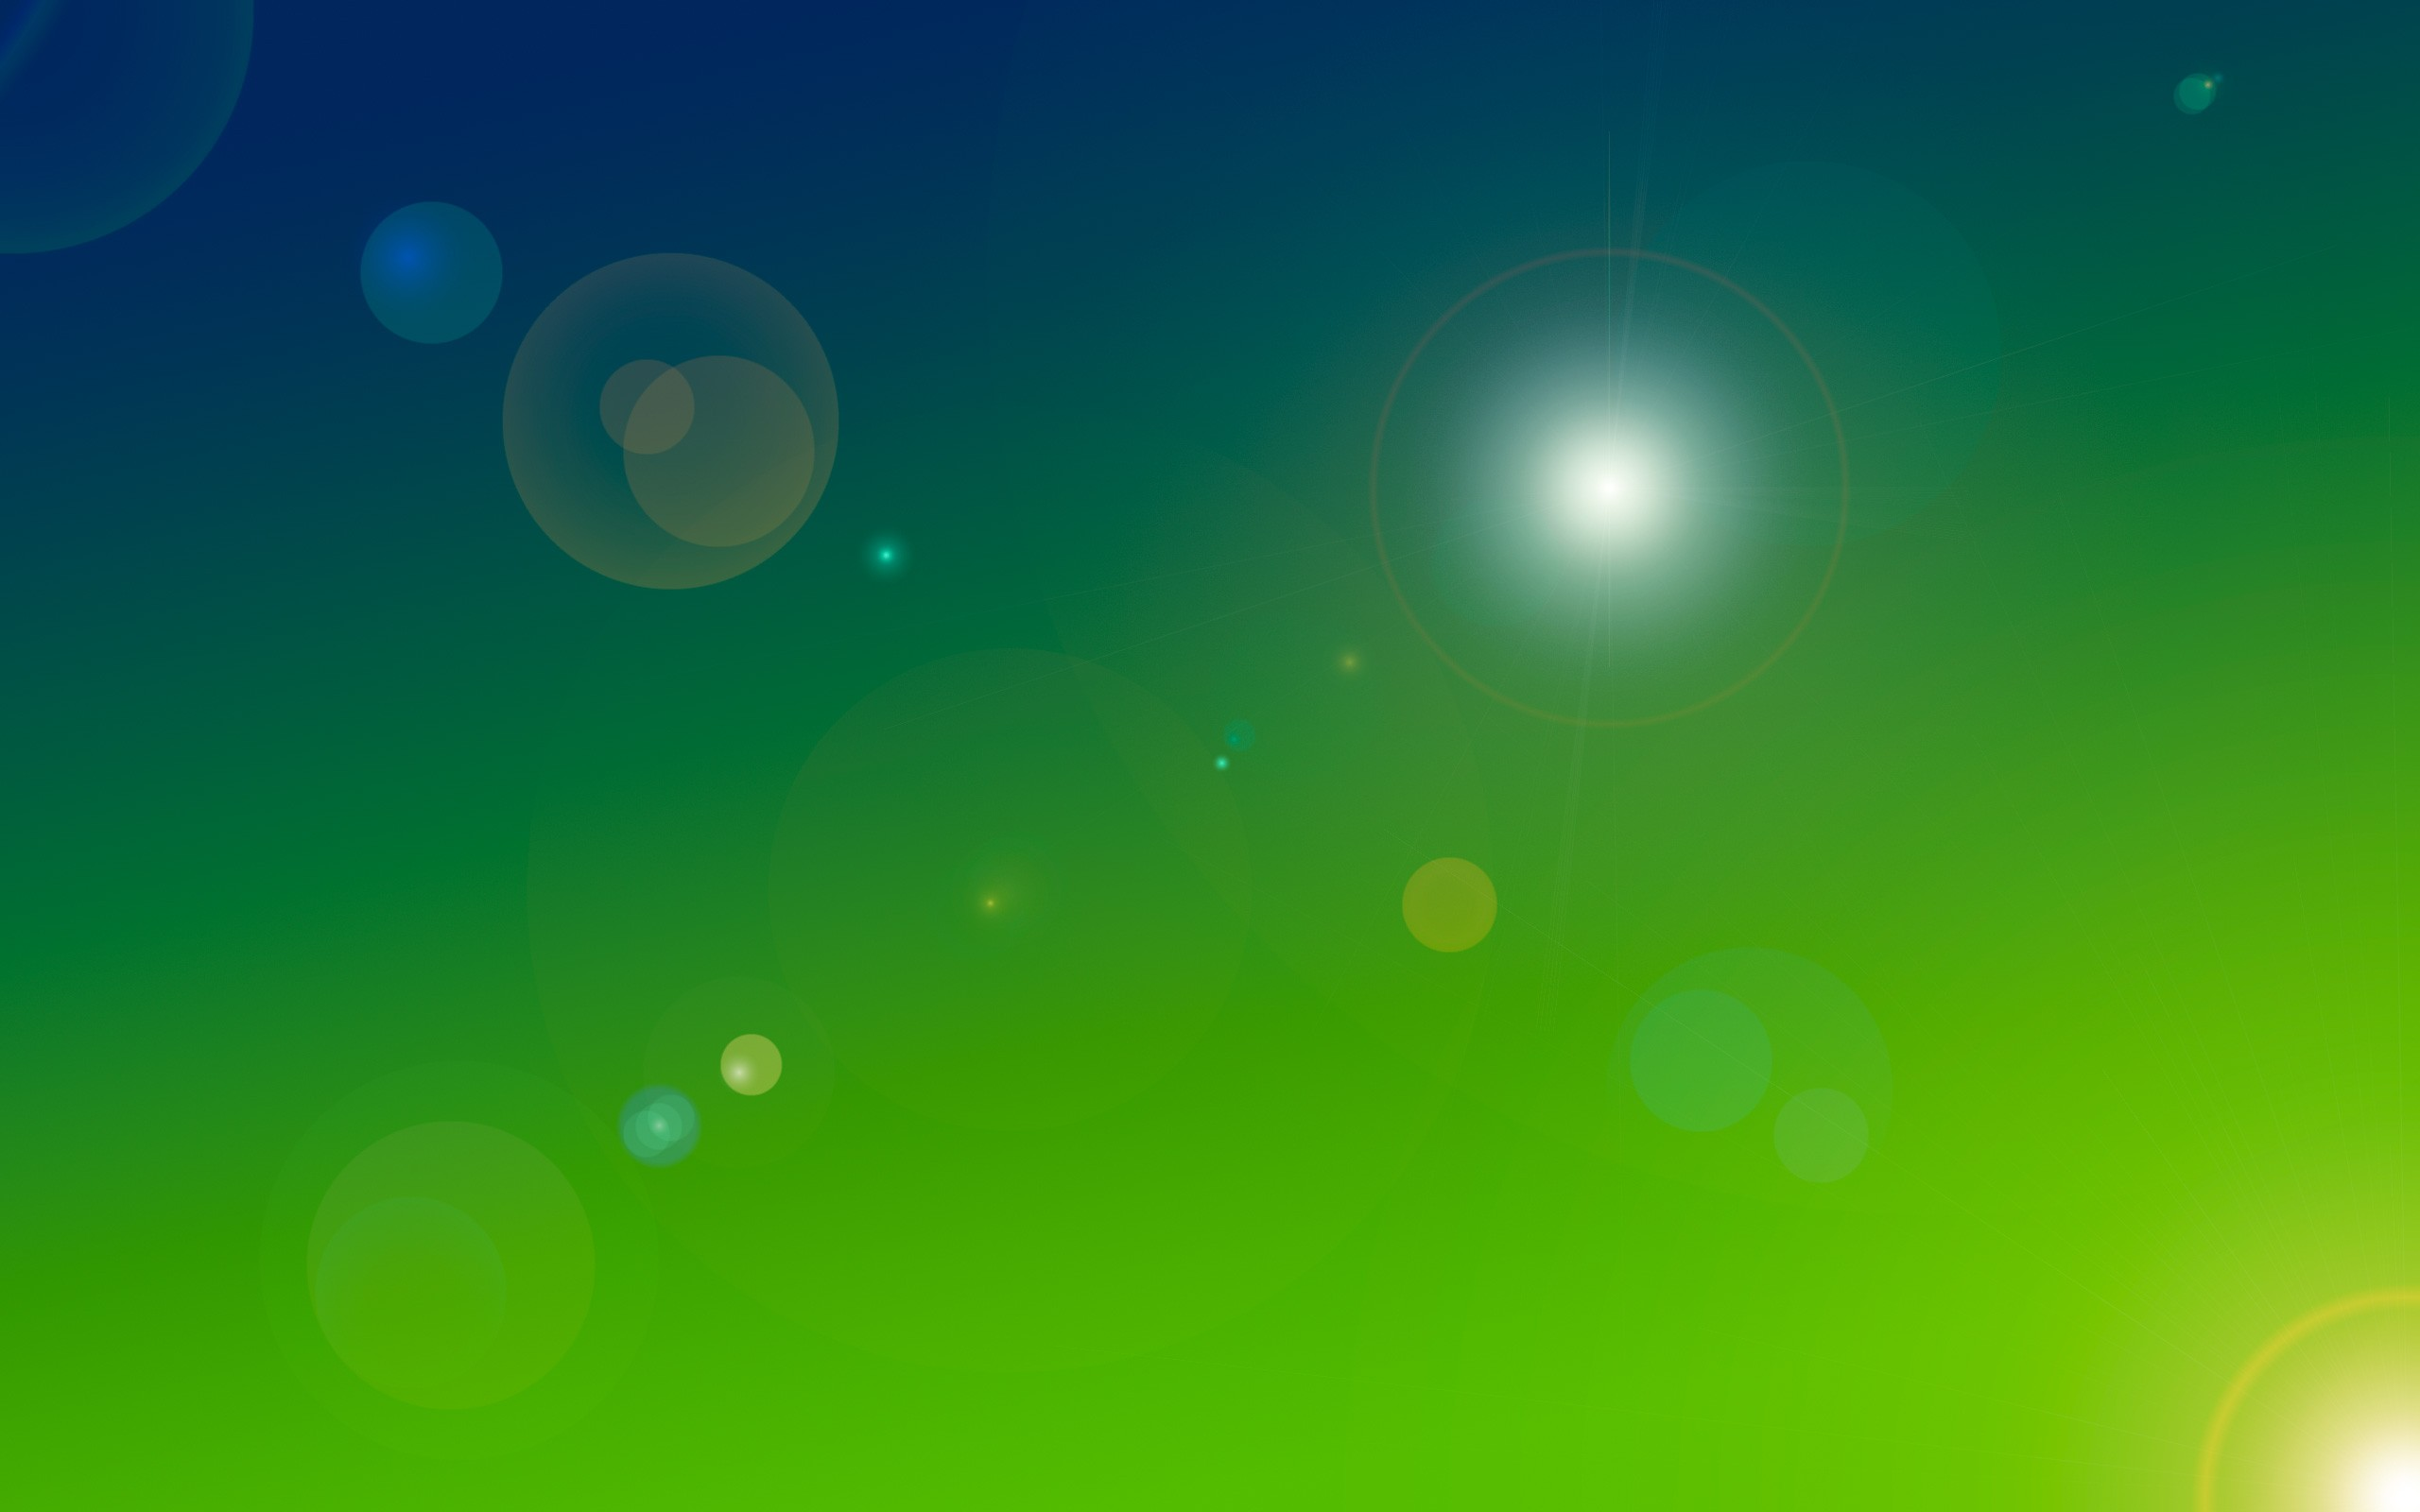 3d Colour Wallpaper Free Download Blue Green Background 183 ① Download Free Beautiful Hd